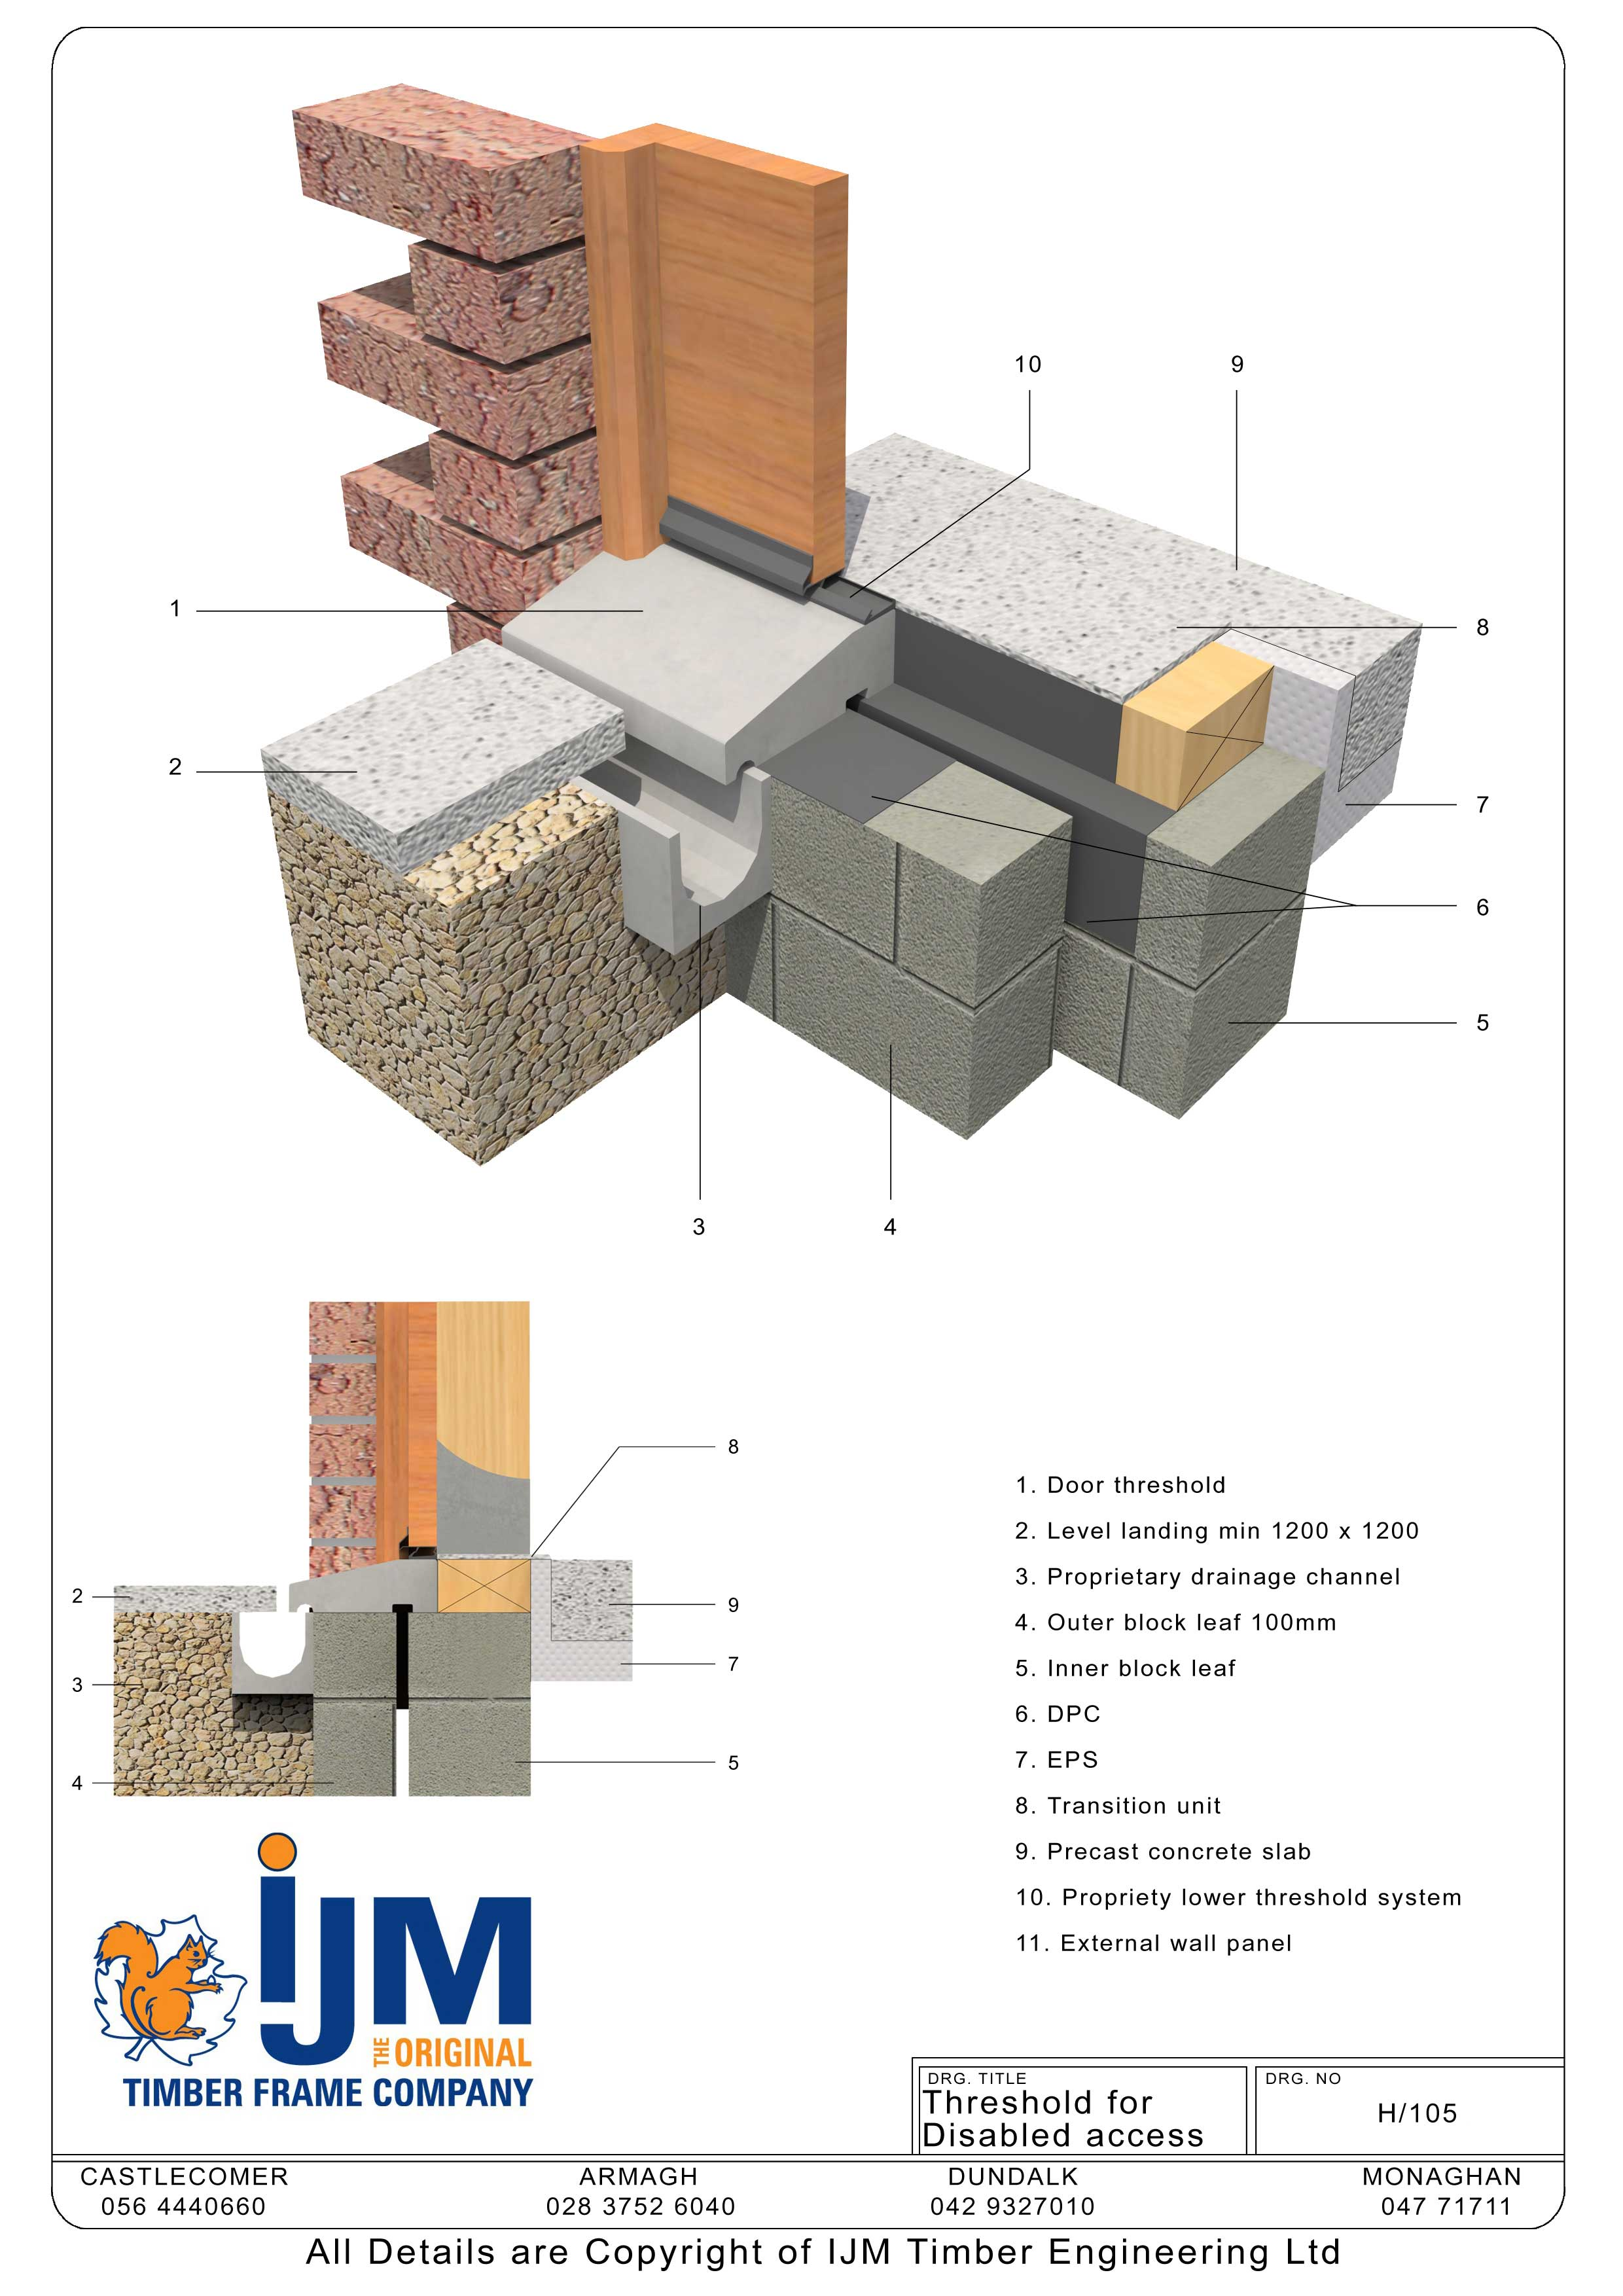 IJM Timberframe - Technical Details - Book of Details - Chapter 6